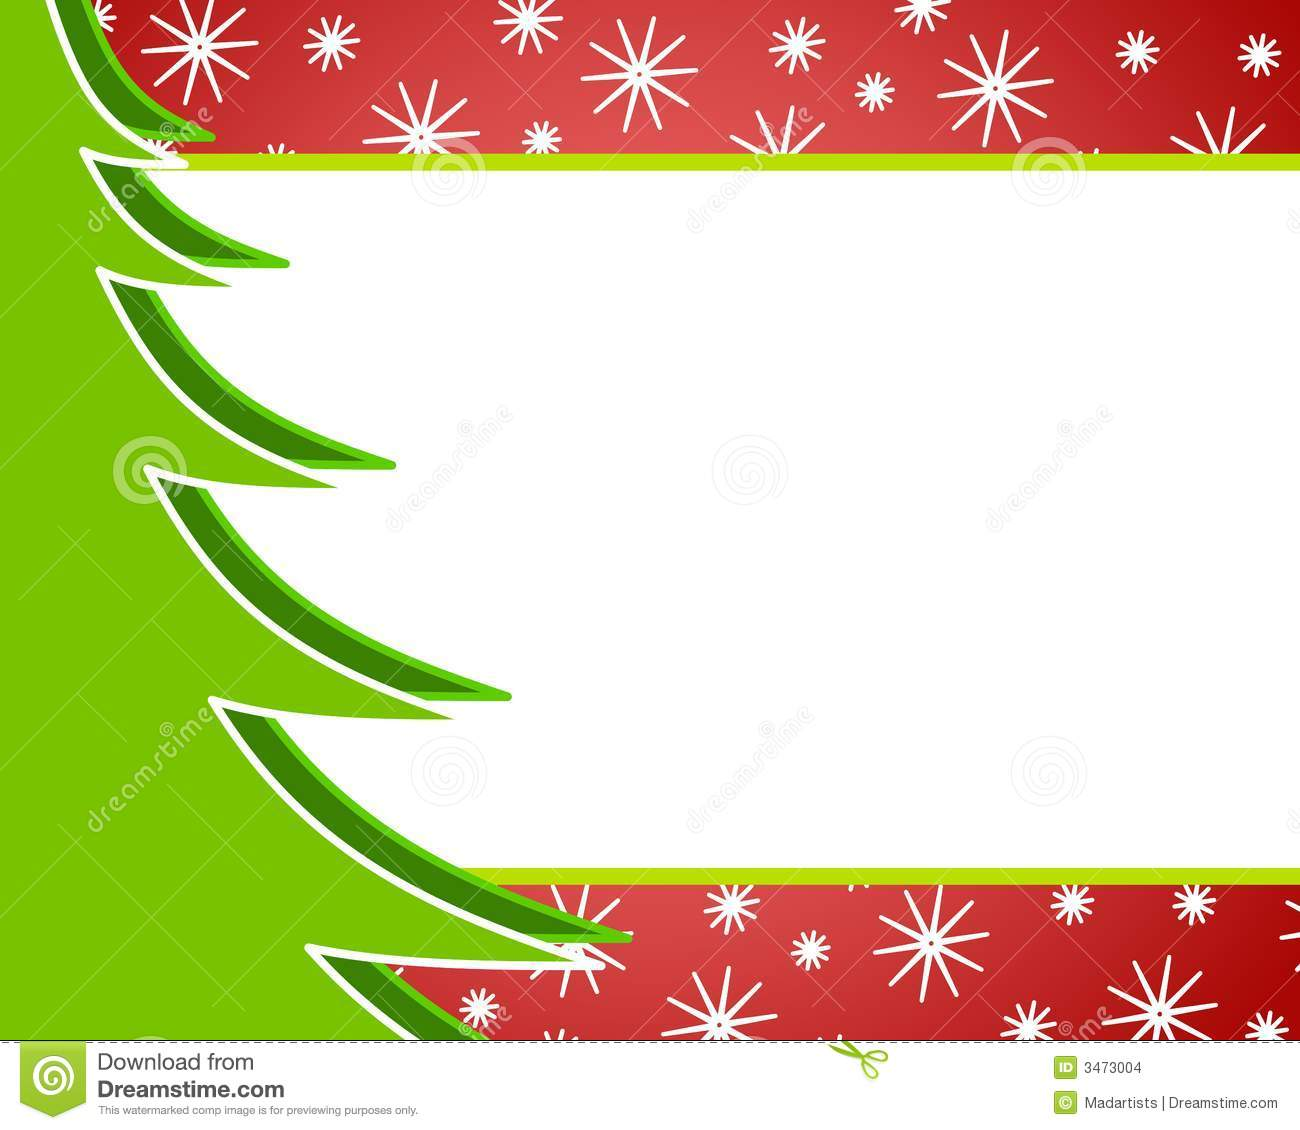 Christmas background clipart 5 » Clipart Station.